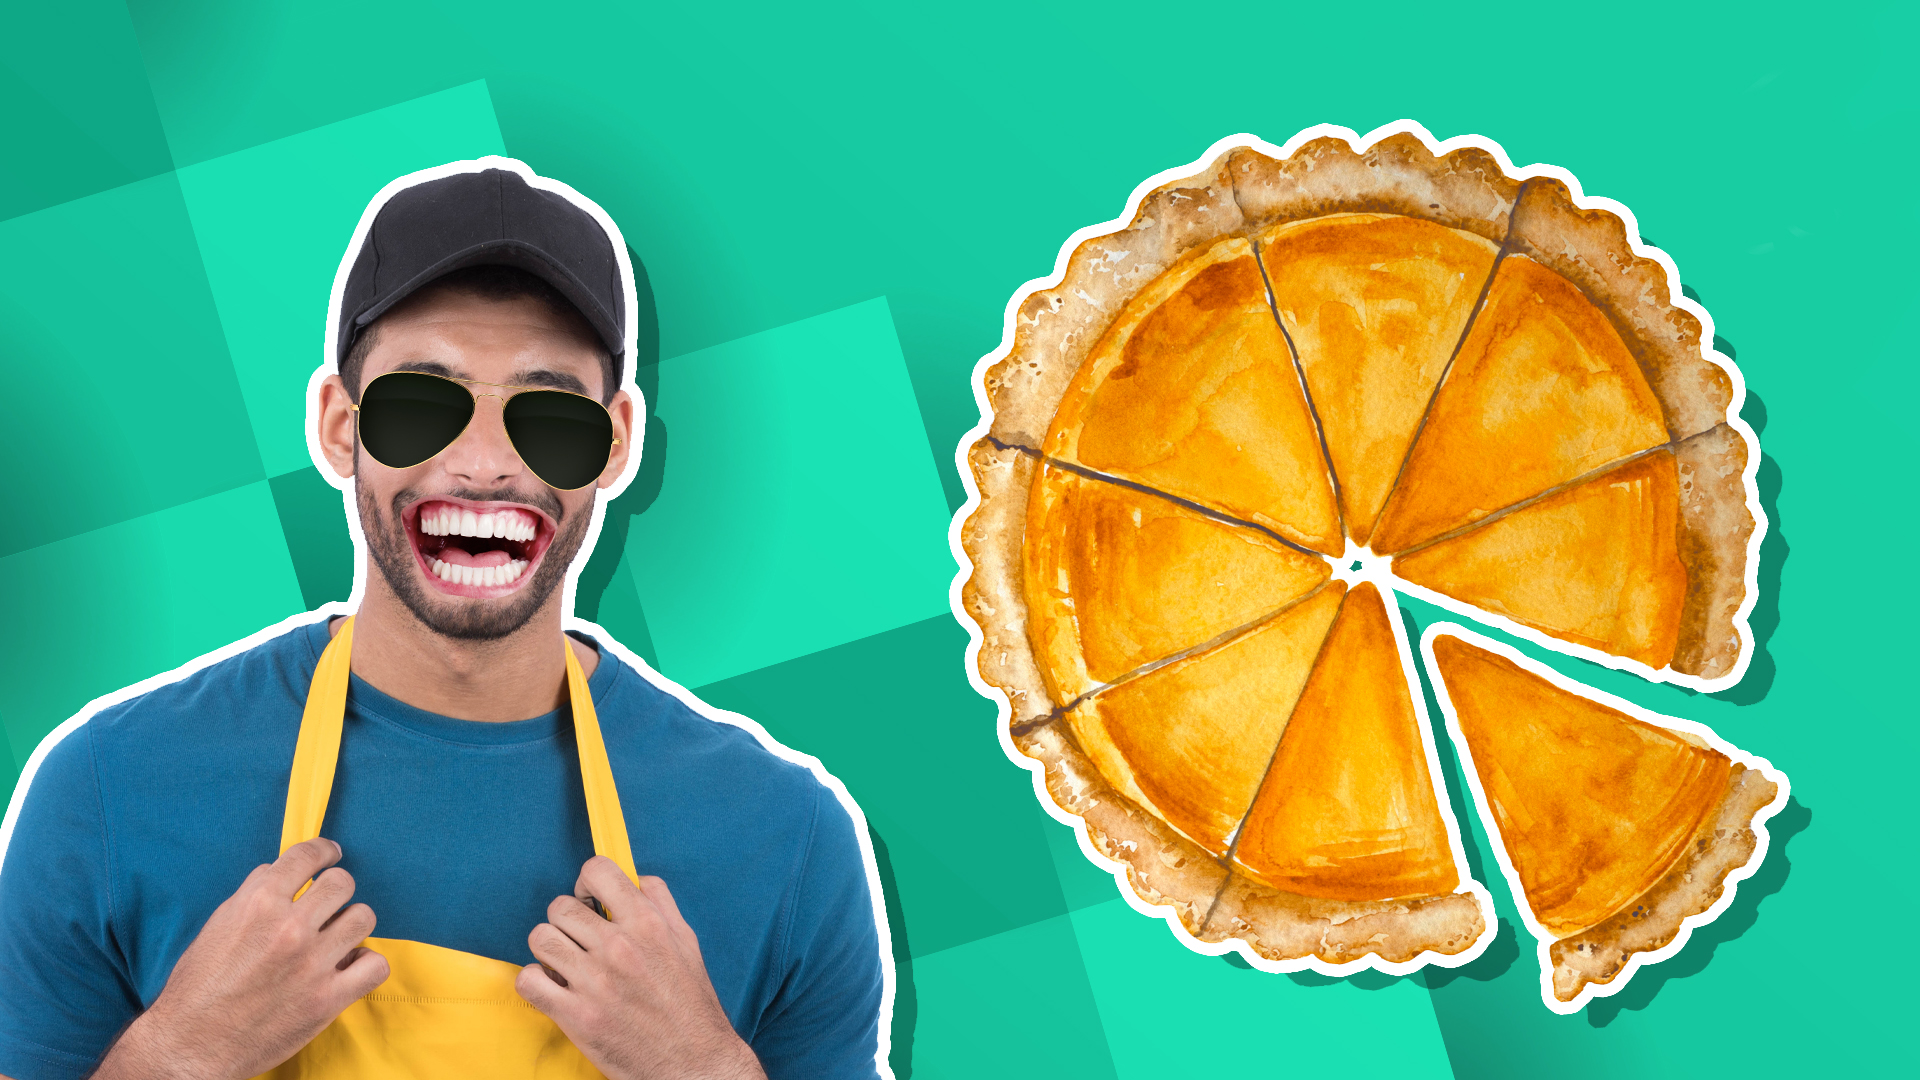 A baker and a pie chart